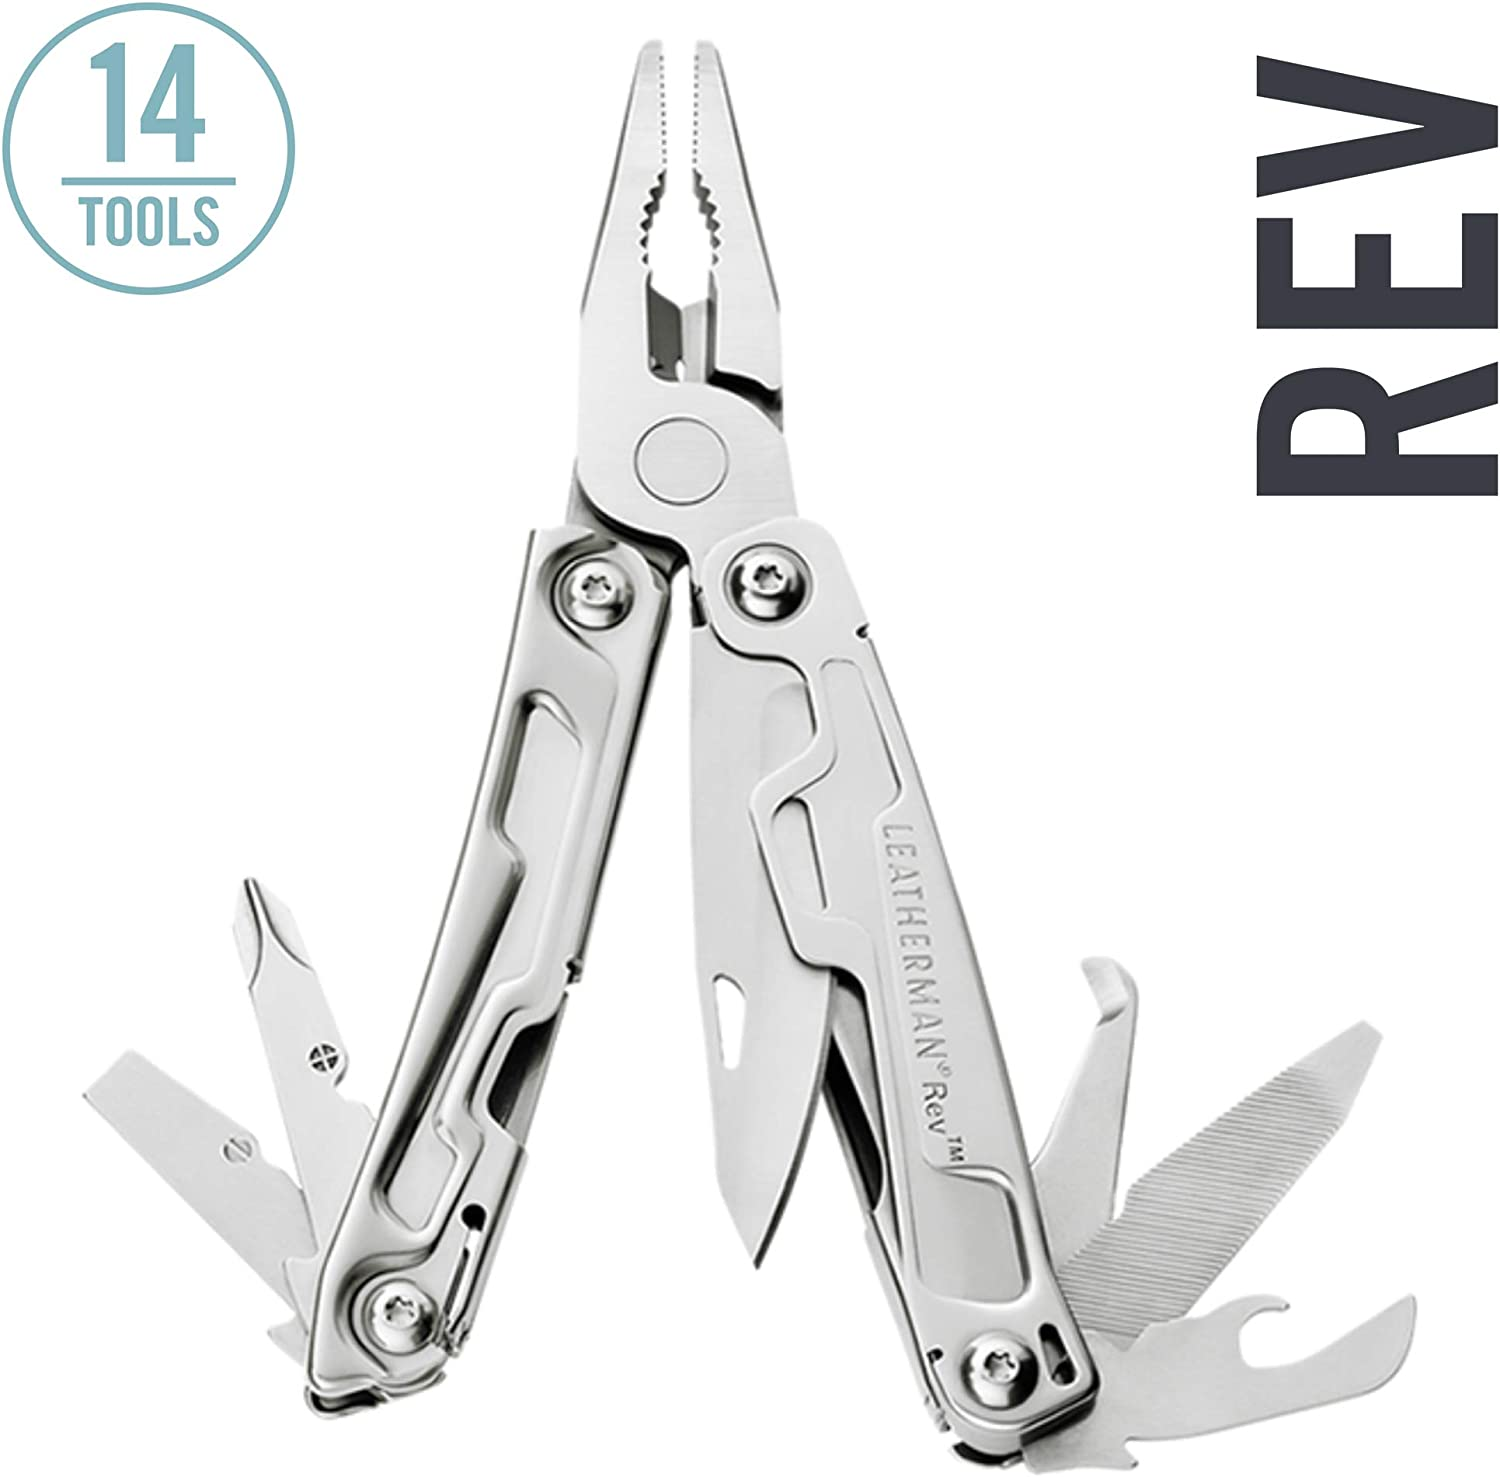 LEATHERMAN – Rev Pocket Size Multitool with Package Opener and Screwdrivers, Stainless Steel